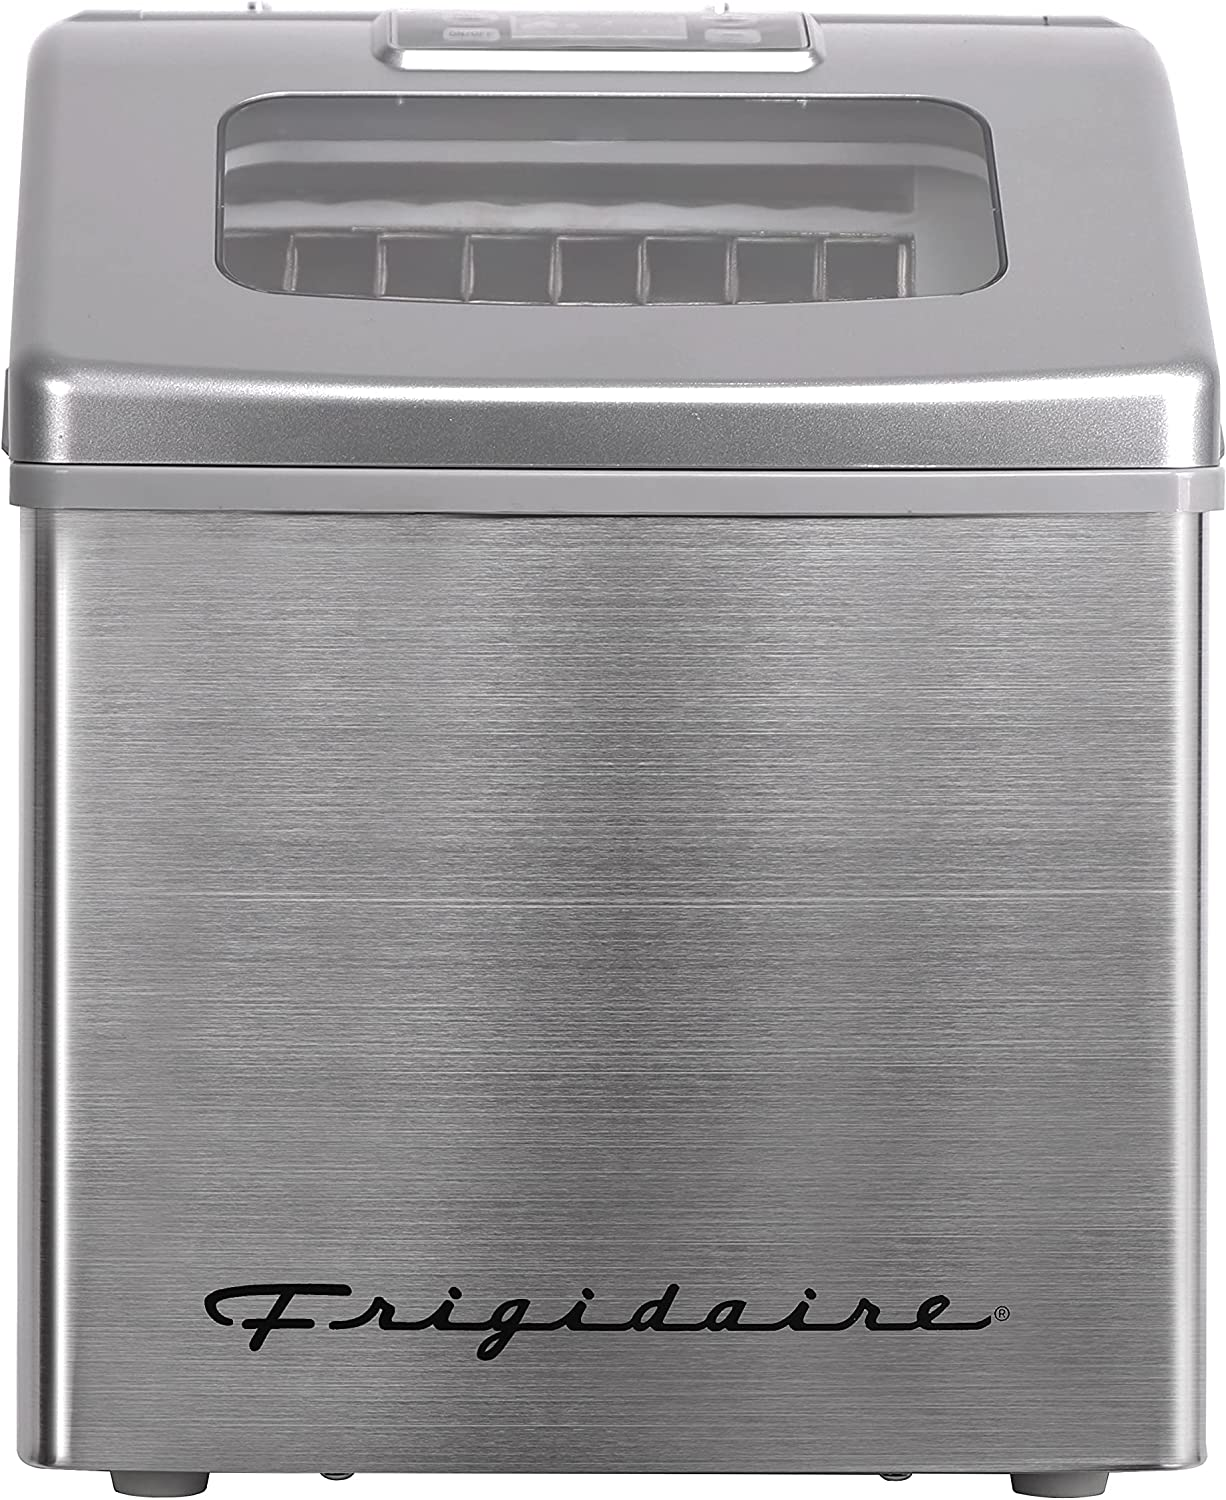 FRIGIDAIRE EFIC452-SS 40 Lbs Extra Large Clear Maker, Stainless Steel, Makes Square Ice